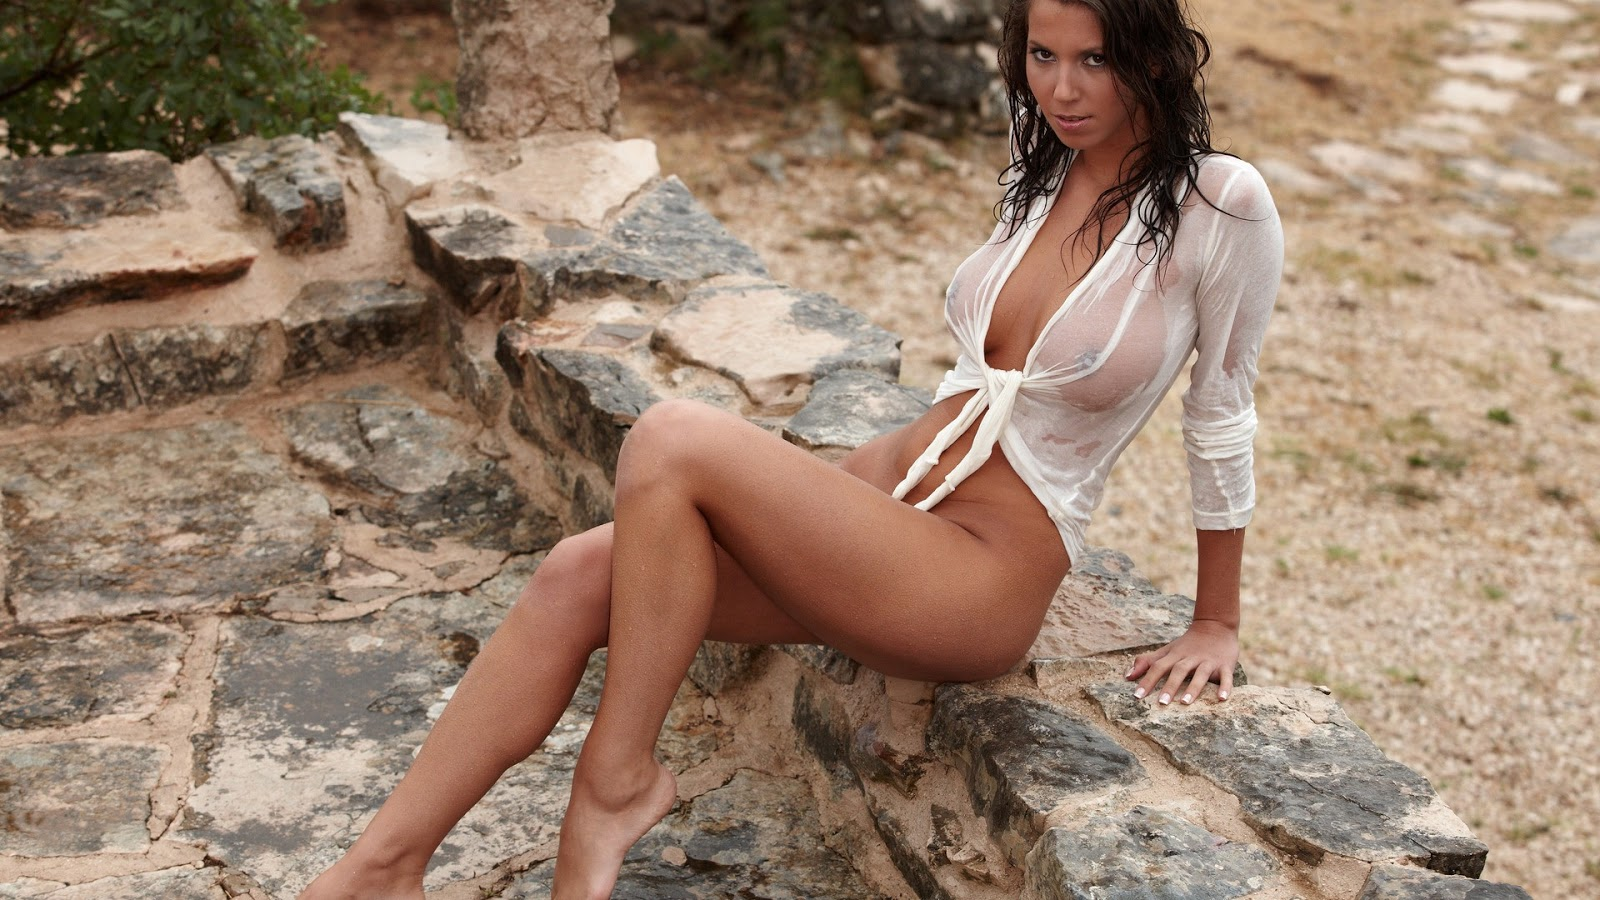 Nude Babe High Quality